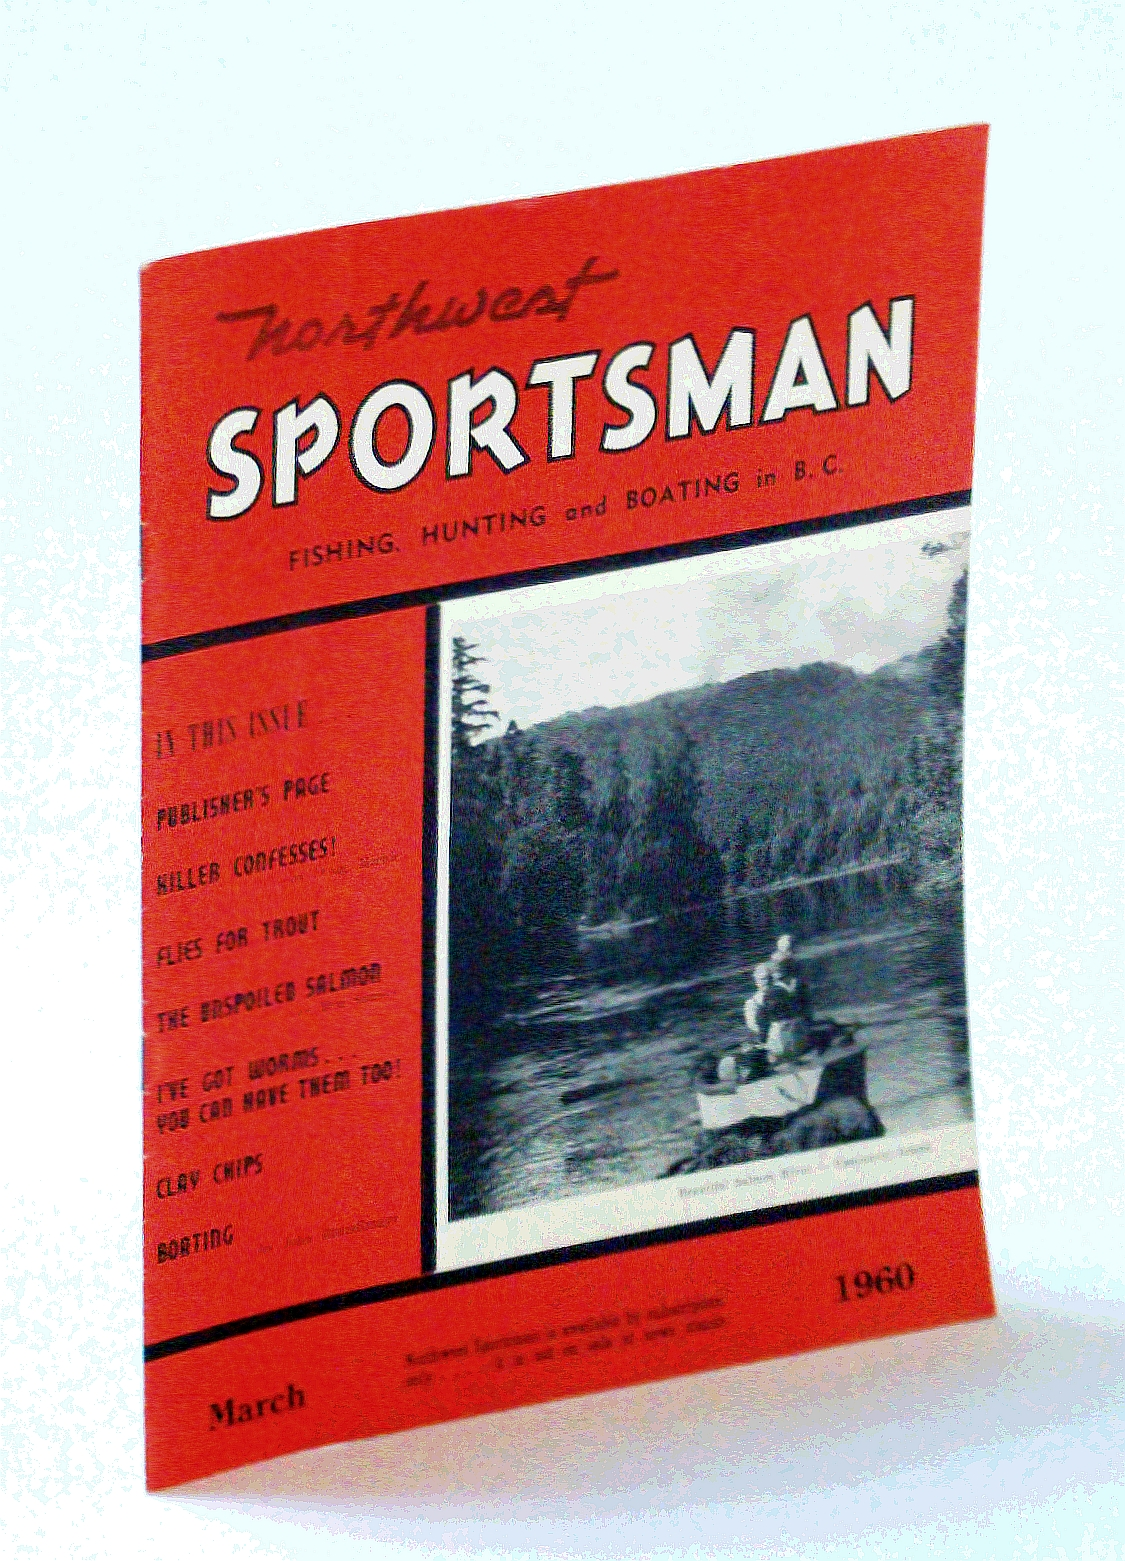 Image for Northwest Sportsman Magazine - Fishing, Hunting and Boating in B.C., March [Mar.] 1960 - The Unspoiled Salmon